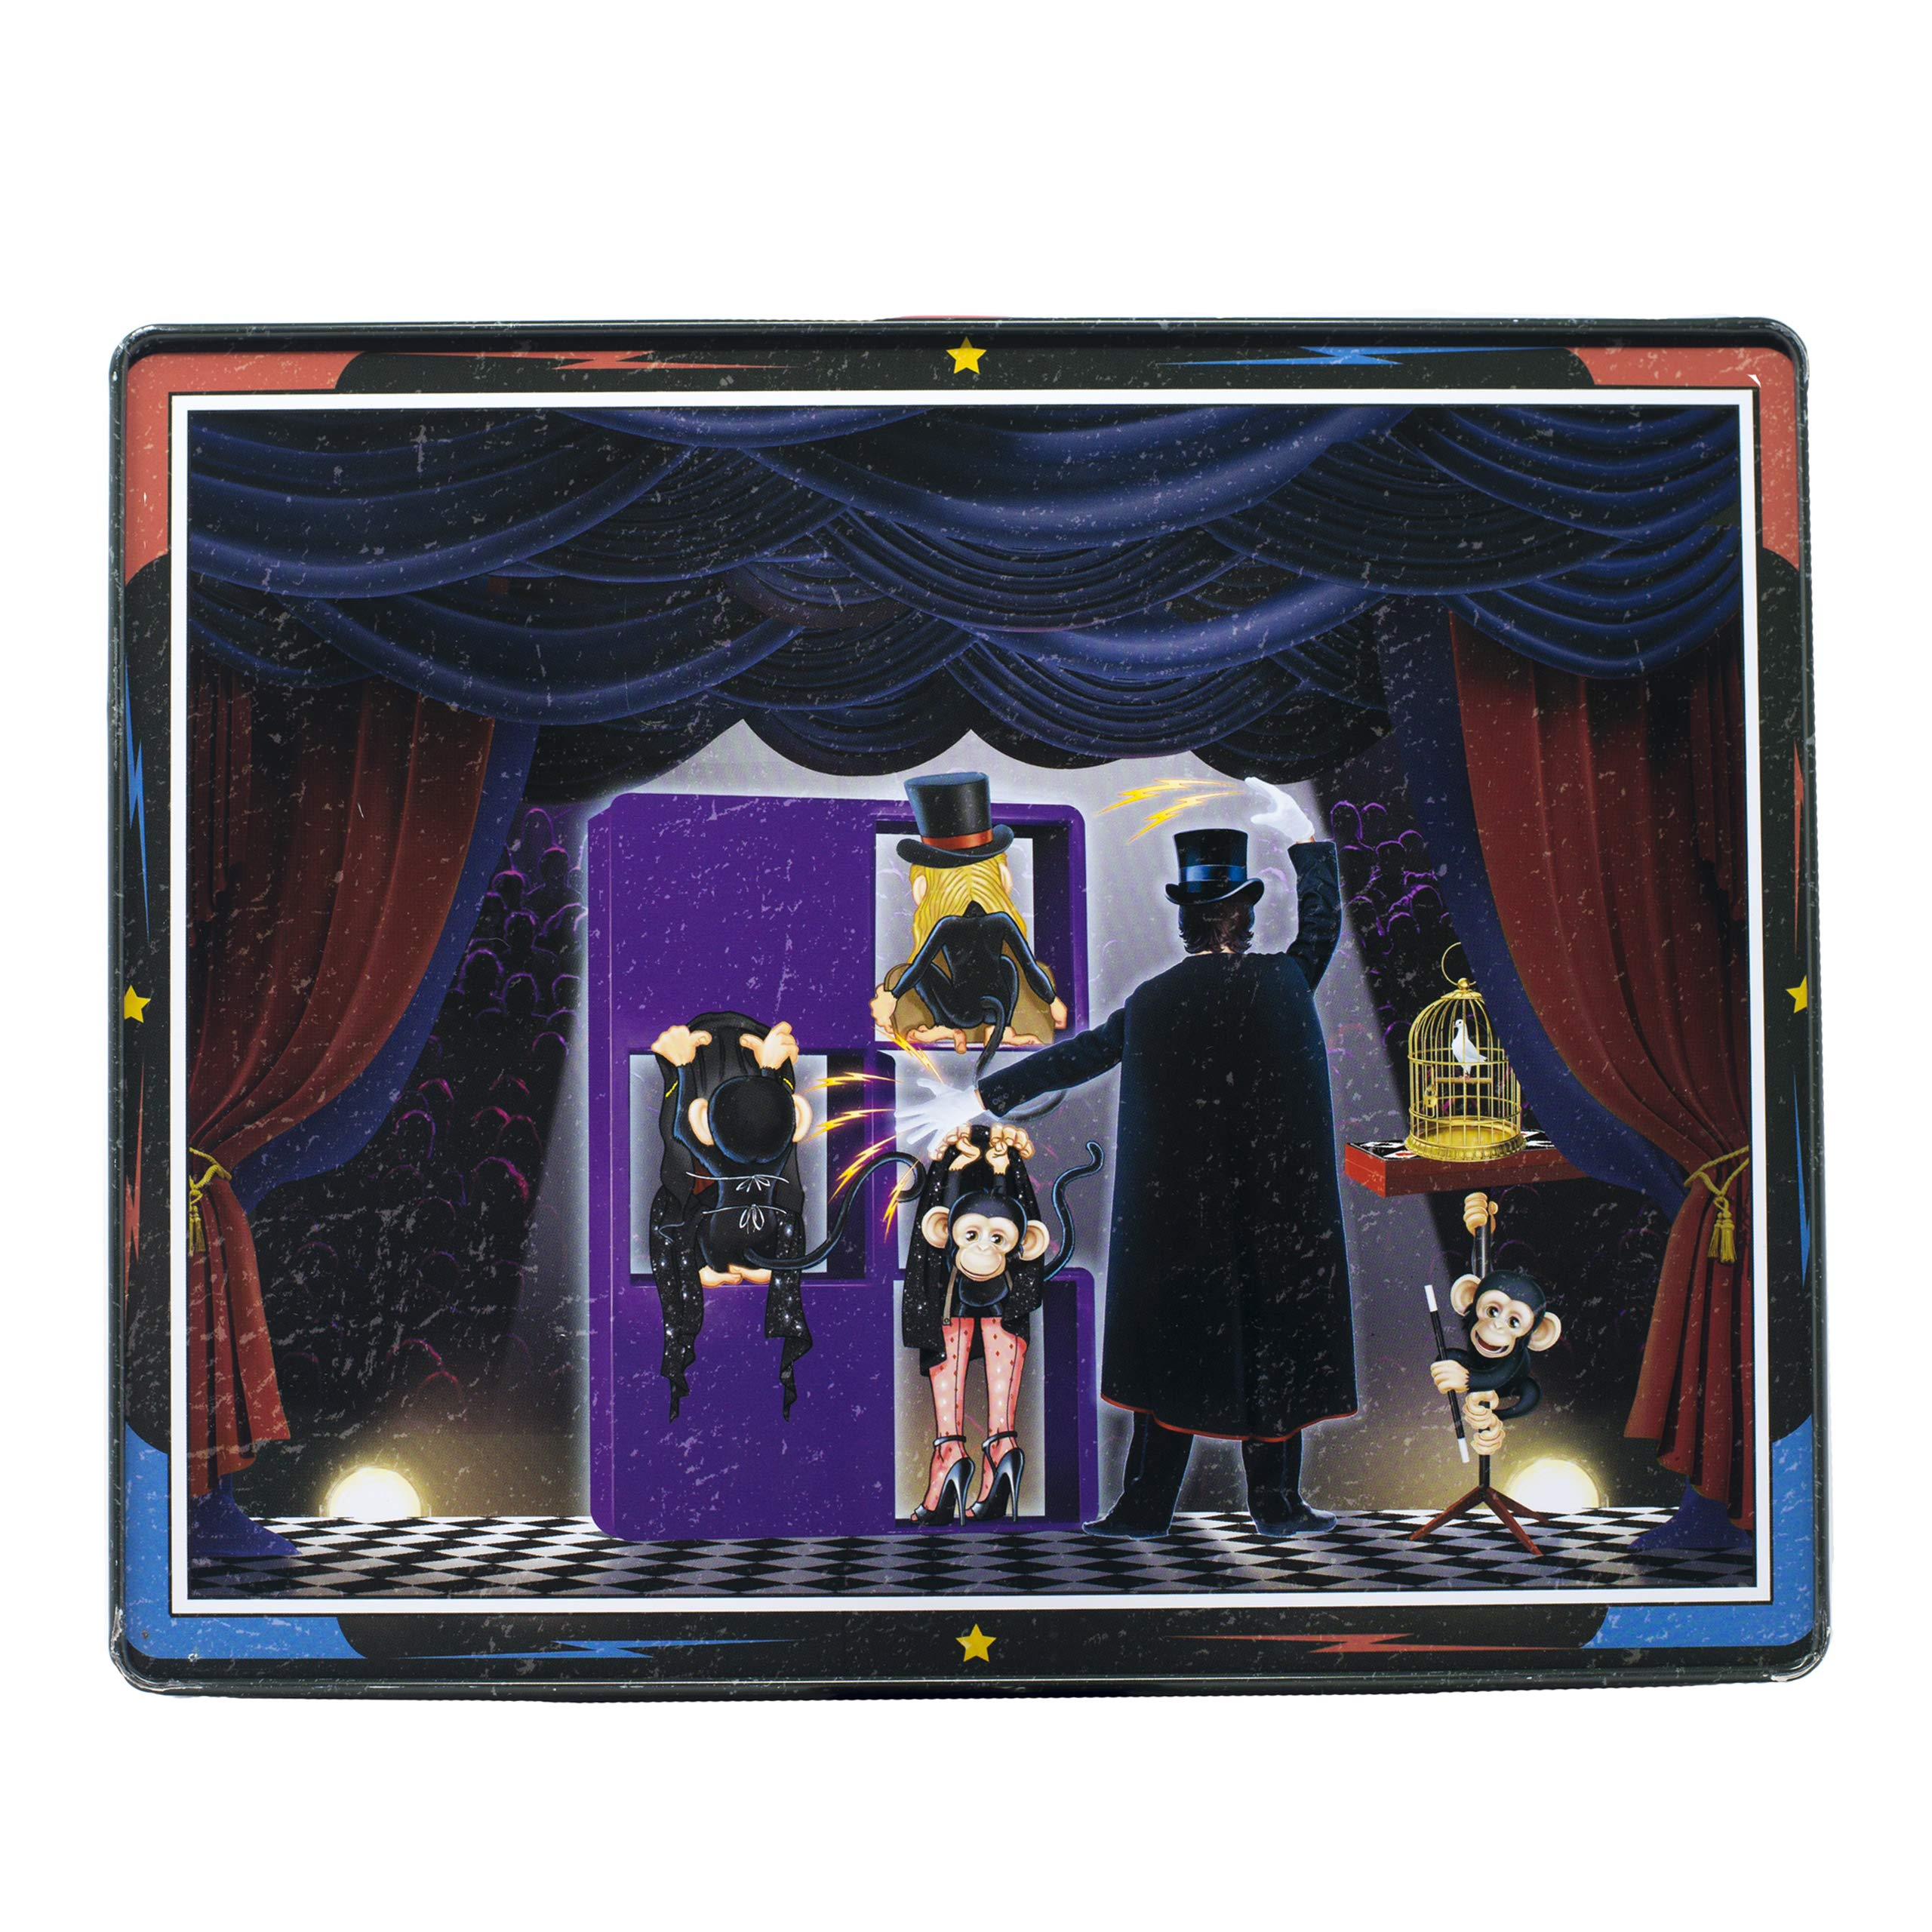 Fantasma Spectacular Magic Box Set for Kids - Magic Kit and Card Trick - Learn 135 Magic Tricks - Great for Boys and Girls 7 Years and Older        by Fantasma (Image #7)